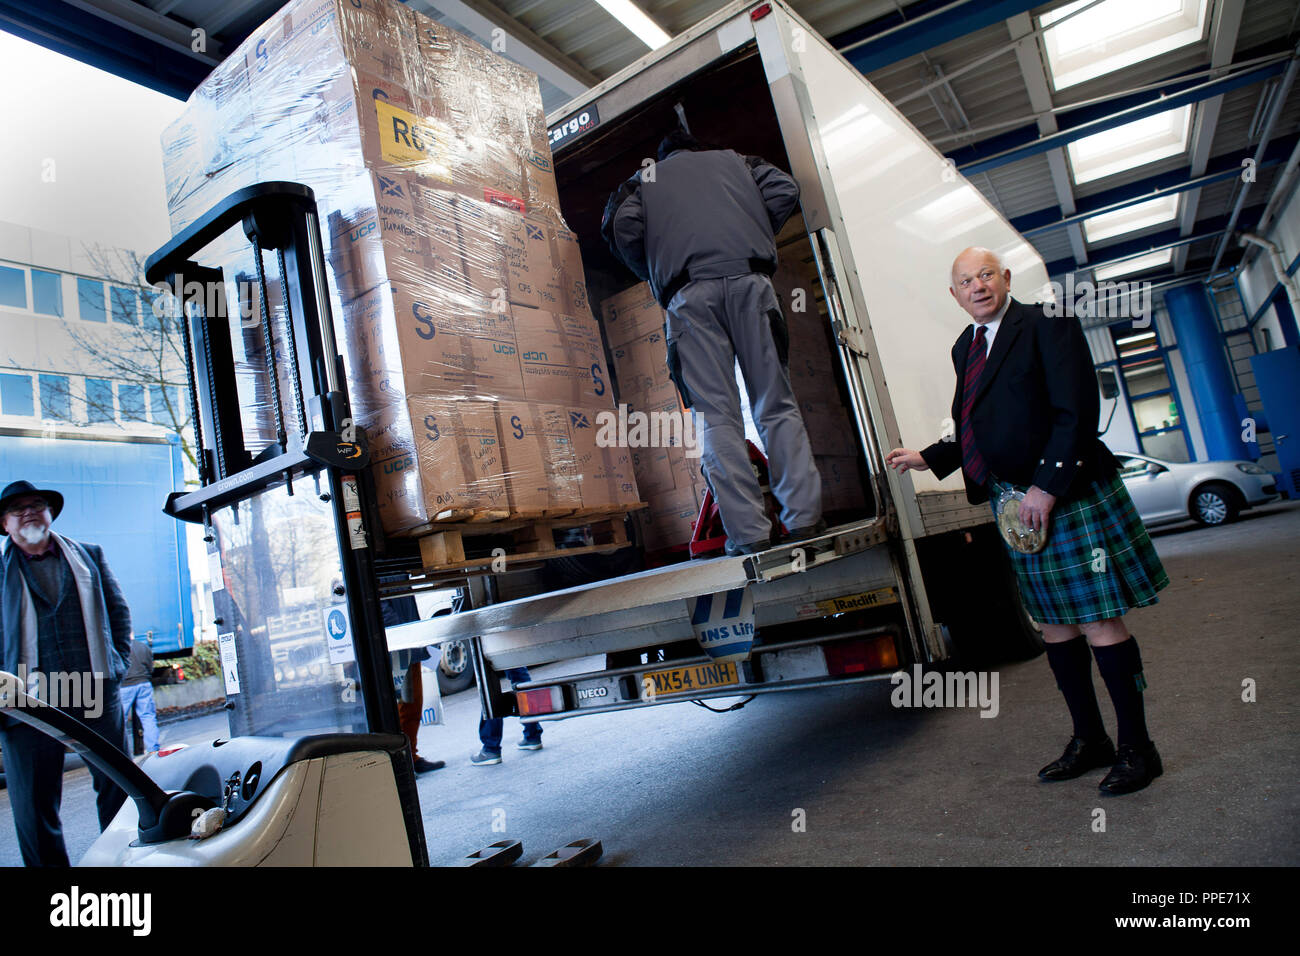 David Reeks, honorary helper of the Scottish relief organization 'Edinburgh Direct Aid' (EDA) has driven a truck from Scotland to Germany with 12 tons of donated clothing. The picture shows him when handing over the donation in the sorting center of Diakonia on Stahlgruberring 8. - Stock Image